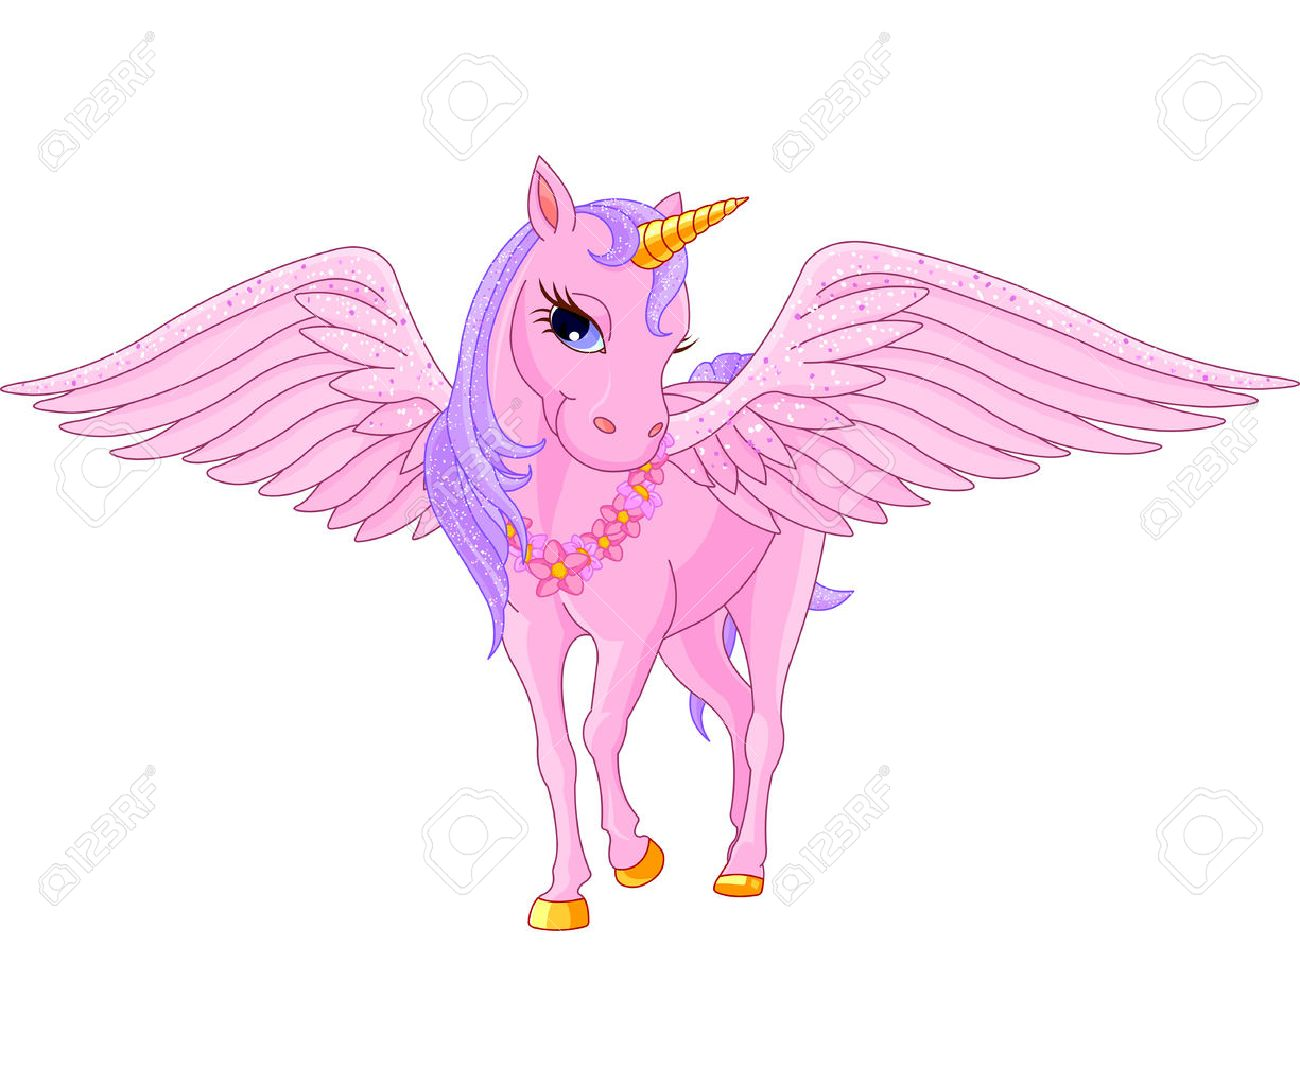 illustration of beautiful pink unicorn pegasus royalty free